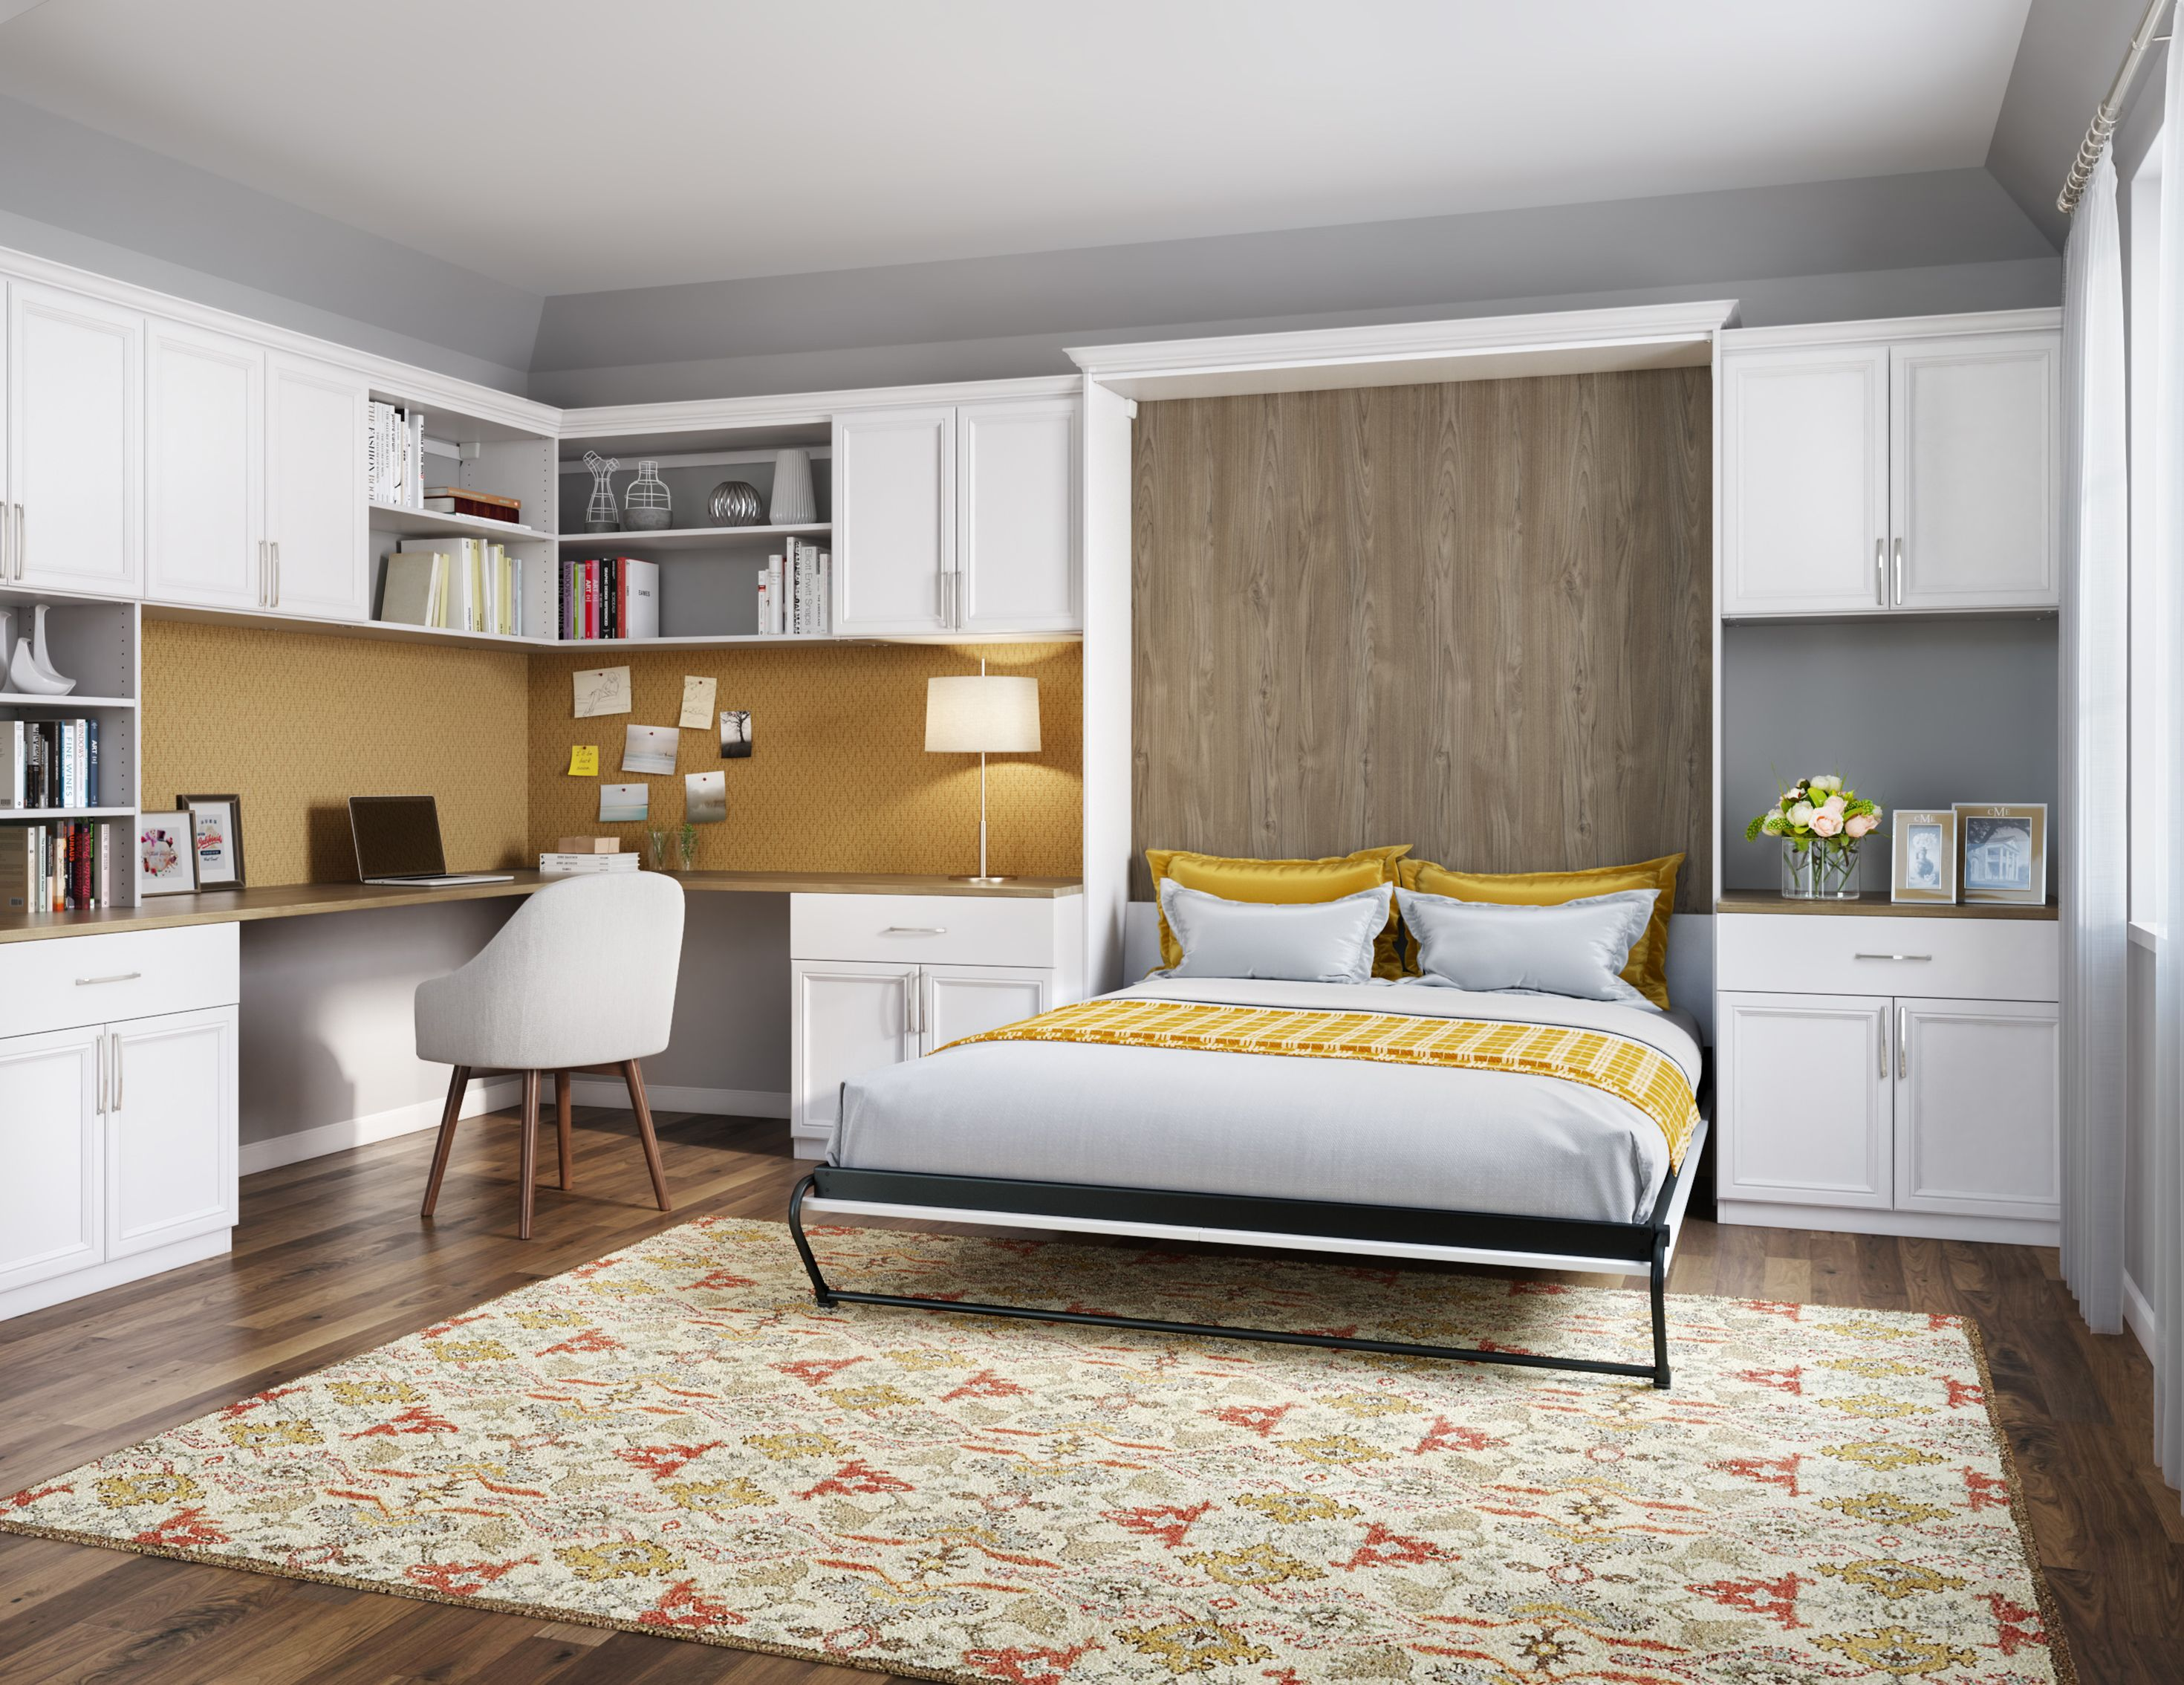 Murphy beds u wall bed designs and ideas by in house